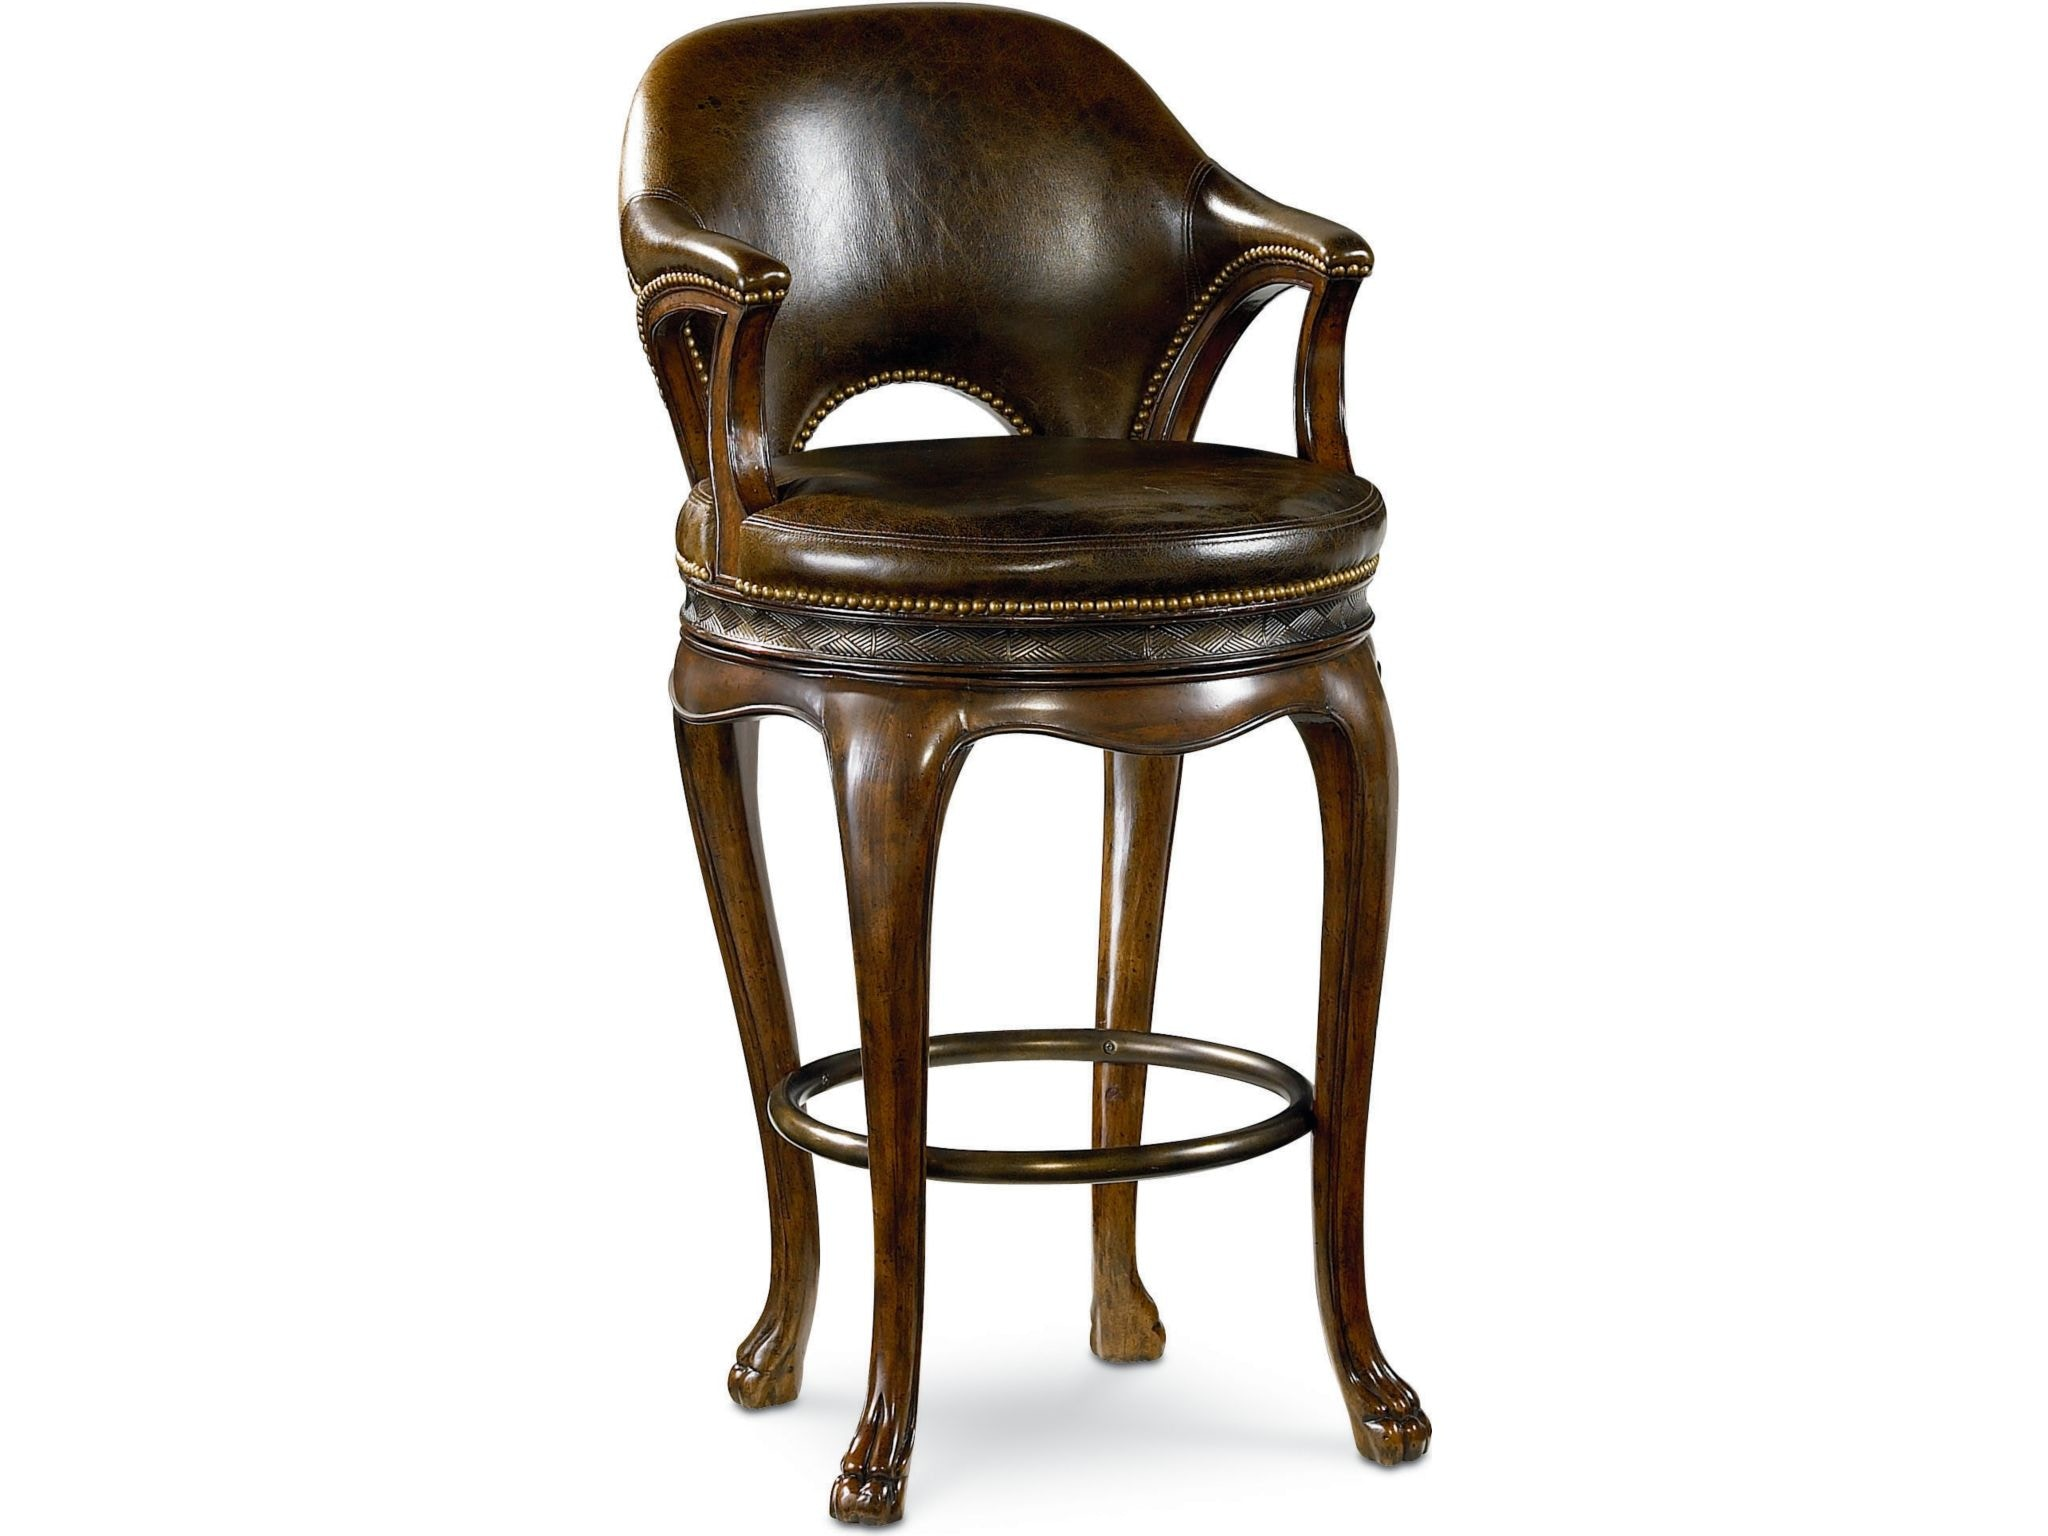 Thomasville Bar And Game Room Kenyan Bar Stool 46291 903